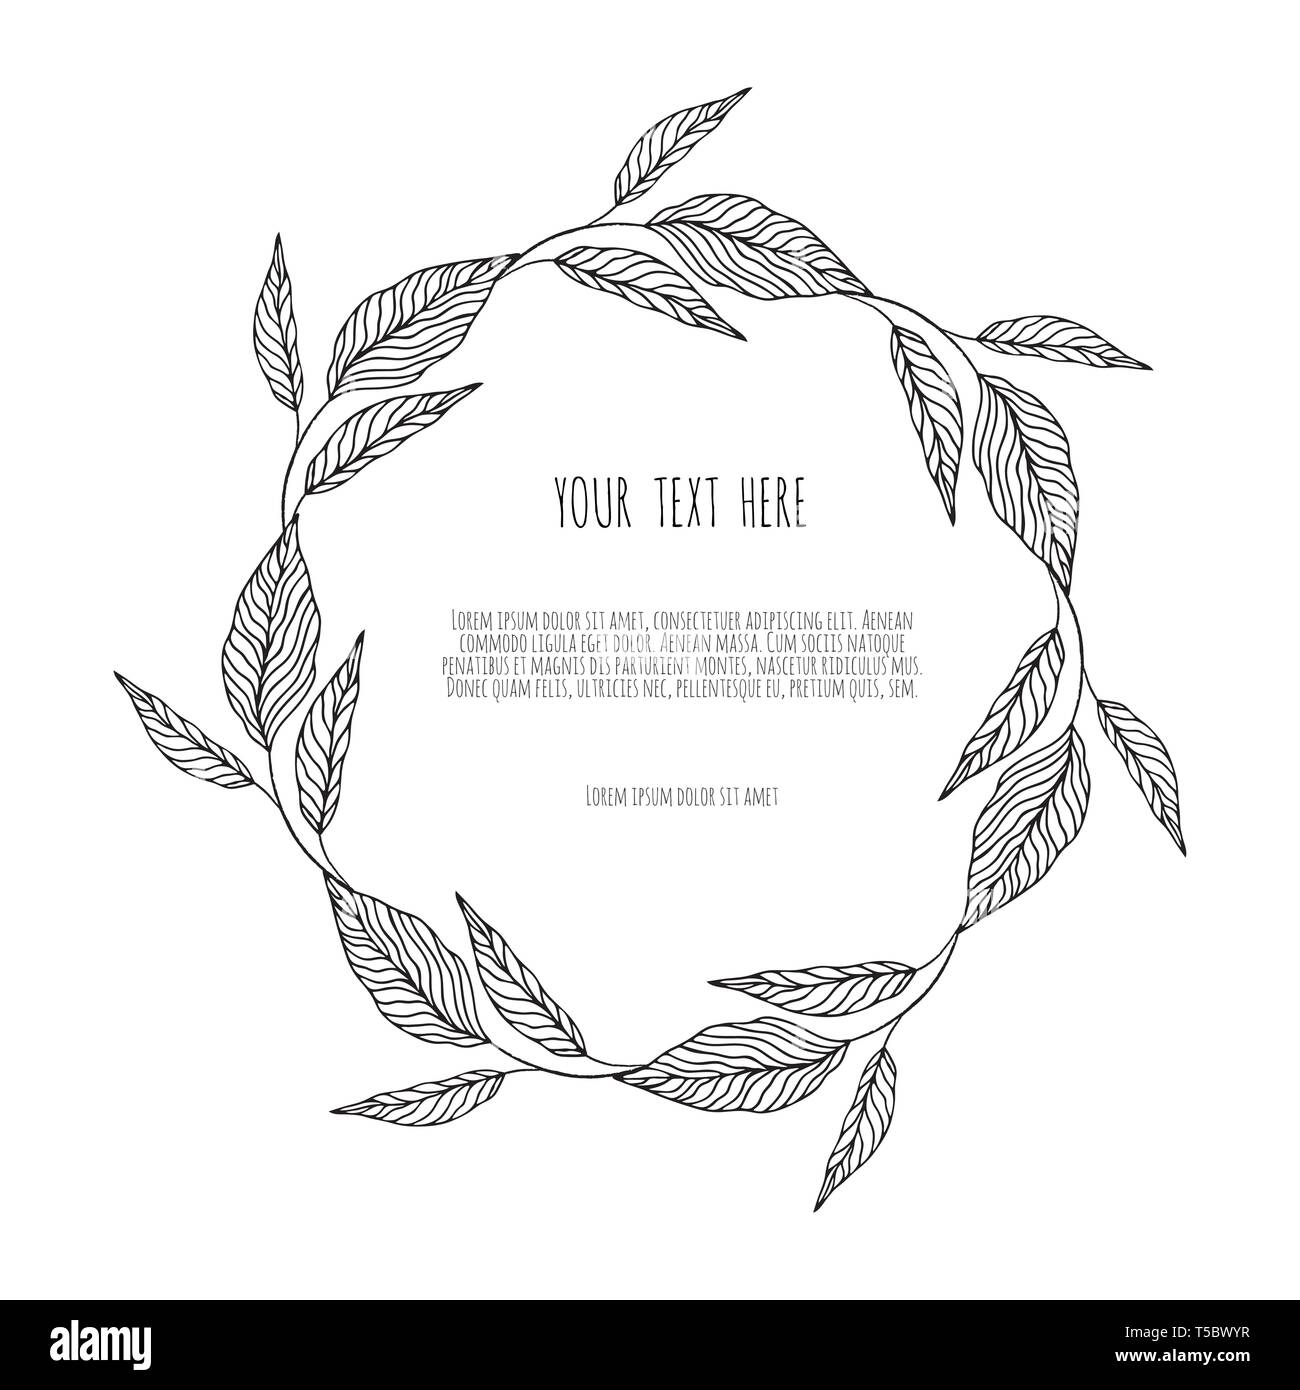 Vector wreath with simple branches and leaves. - Stock Image